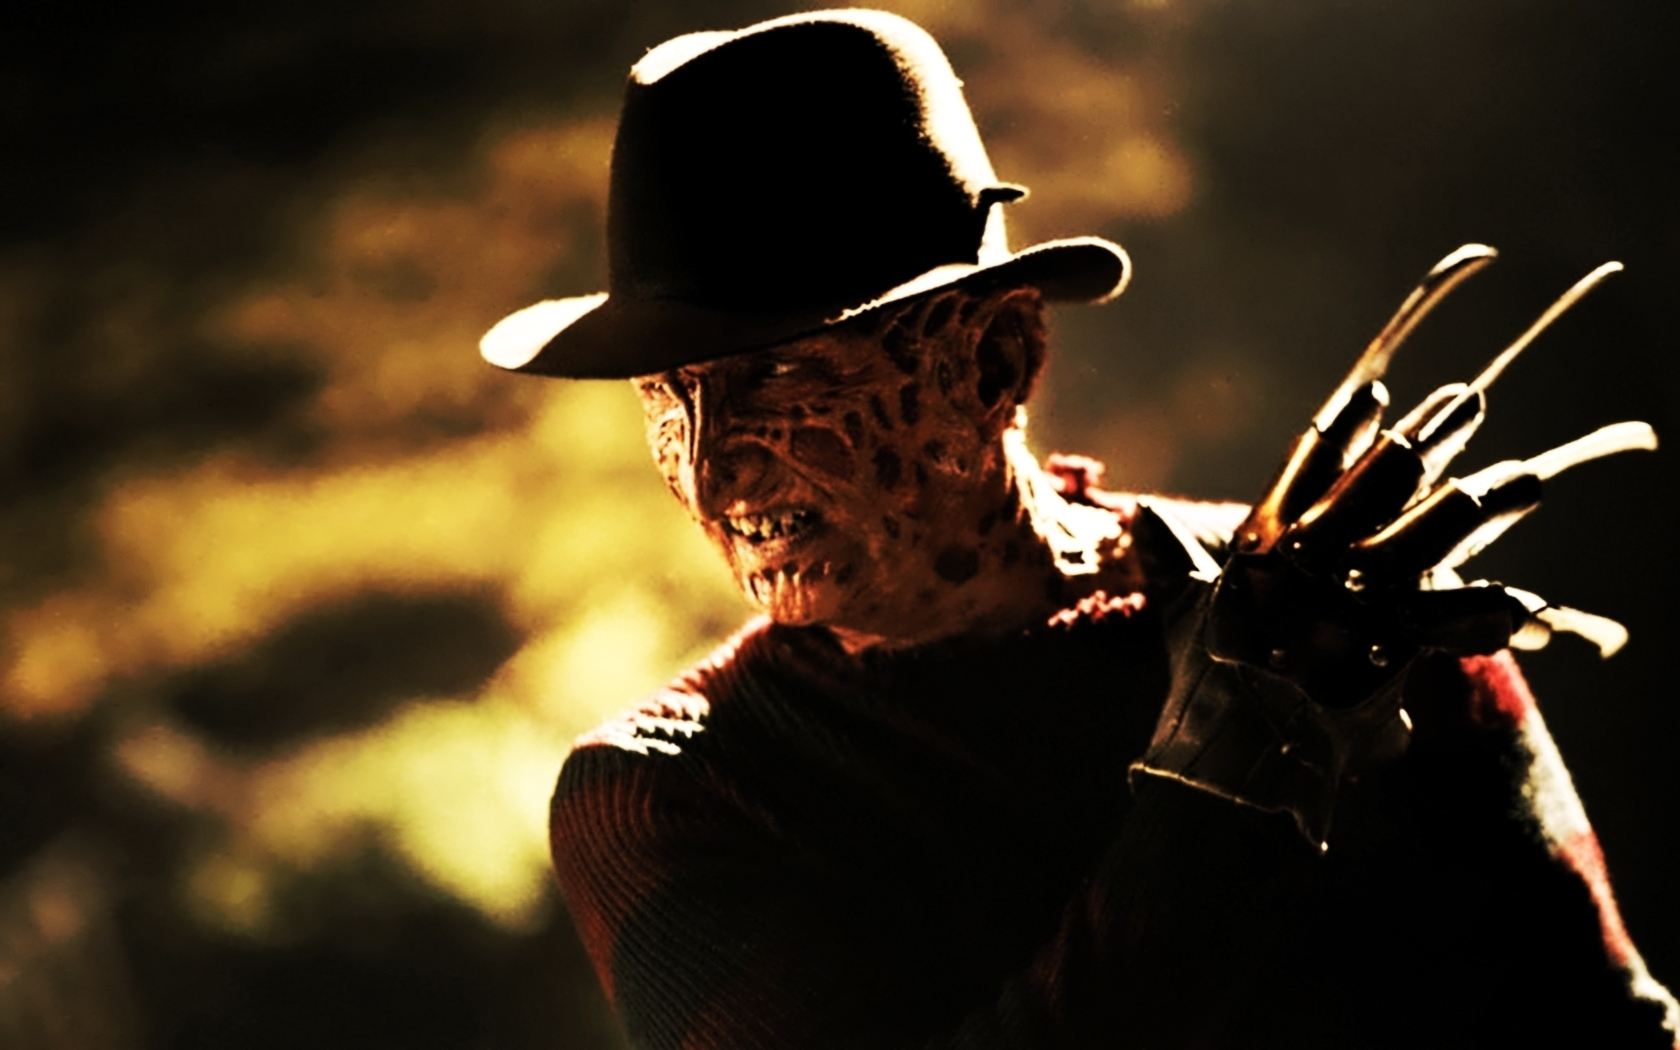 Nato And Remy S Last Stand Freddy Krueger S Die Light Reel